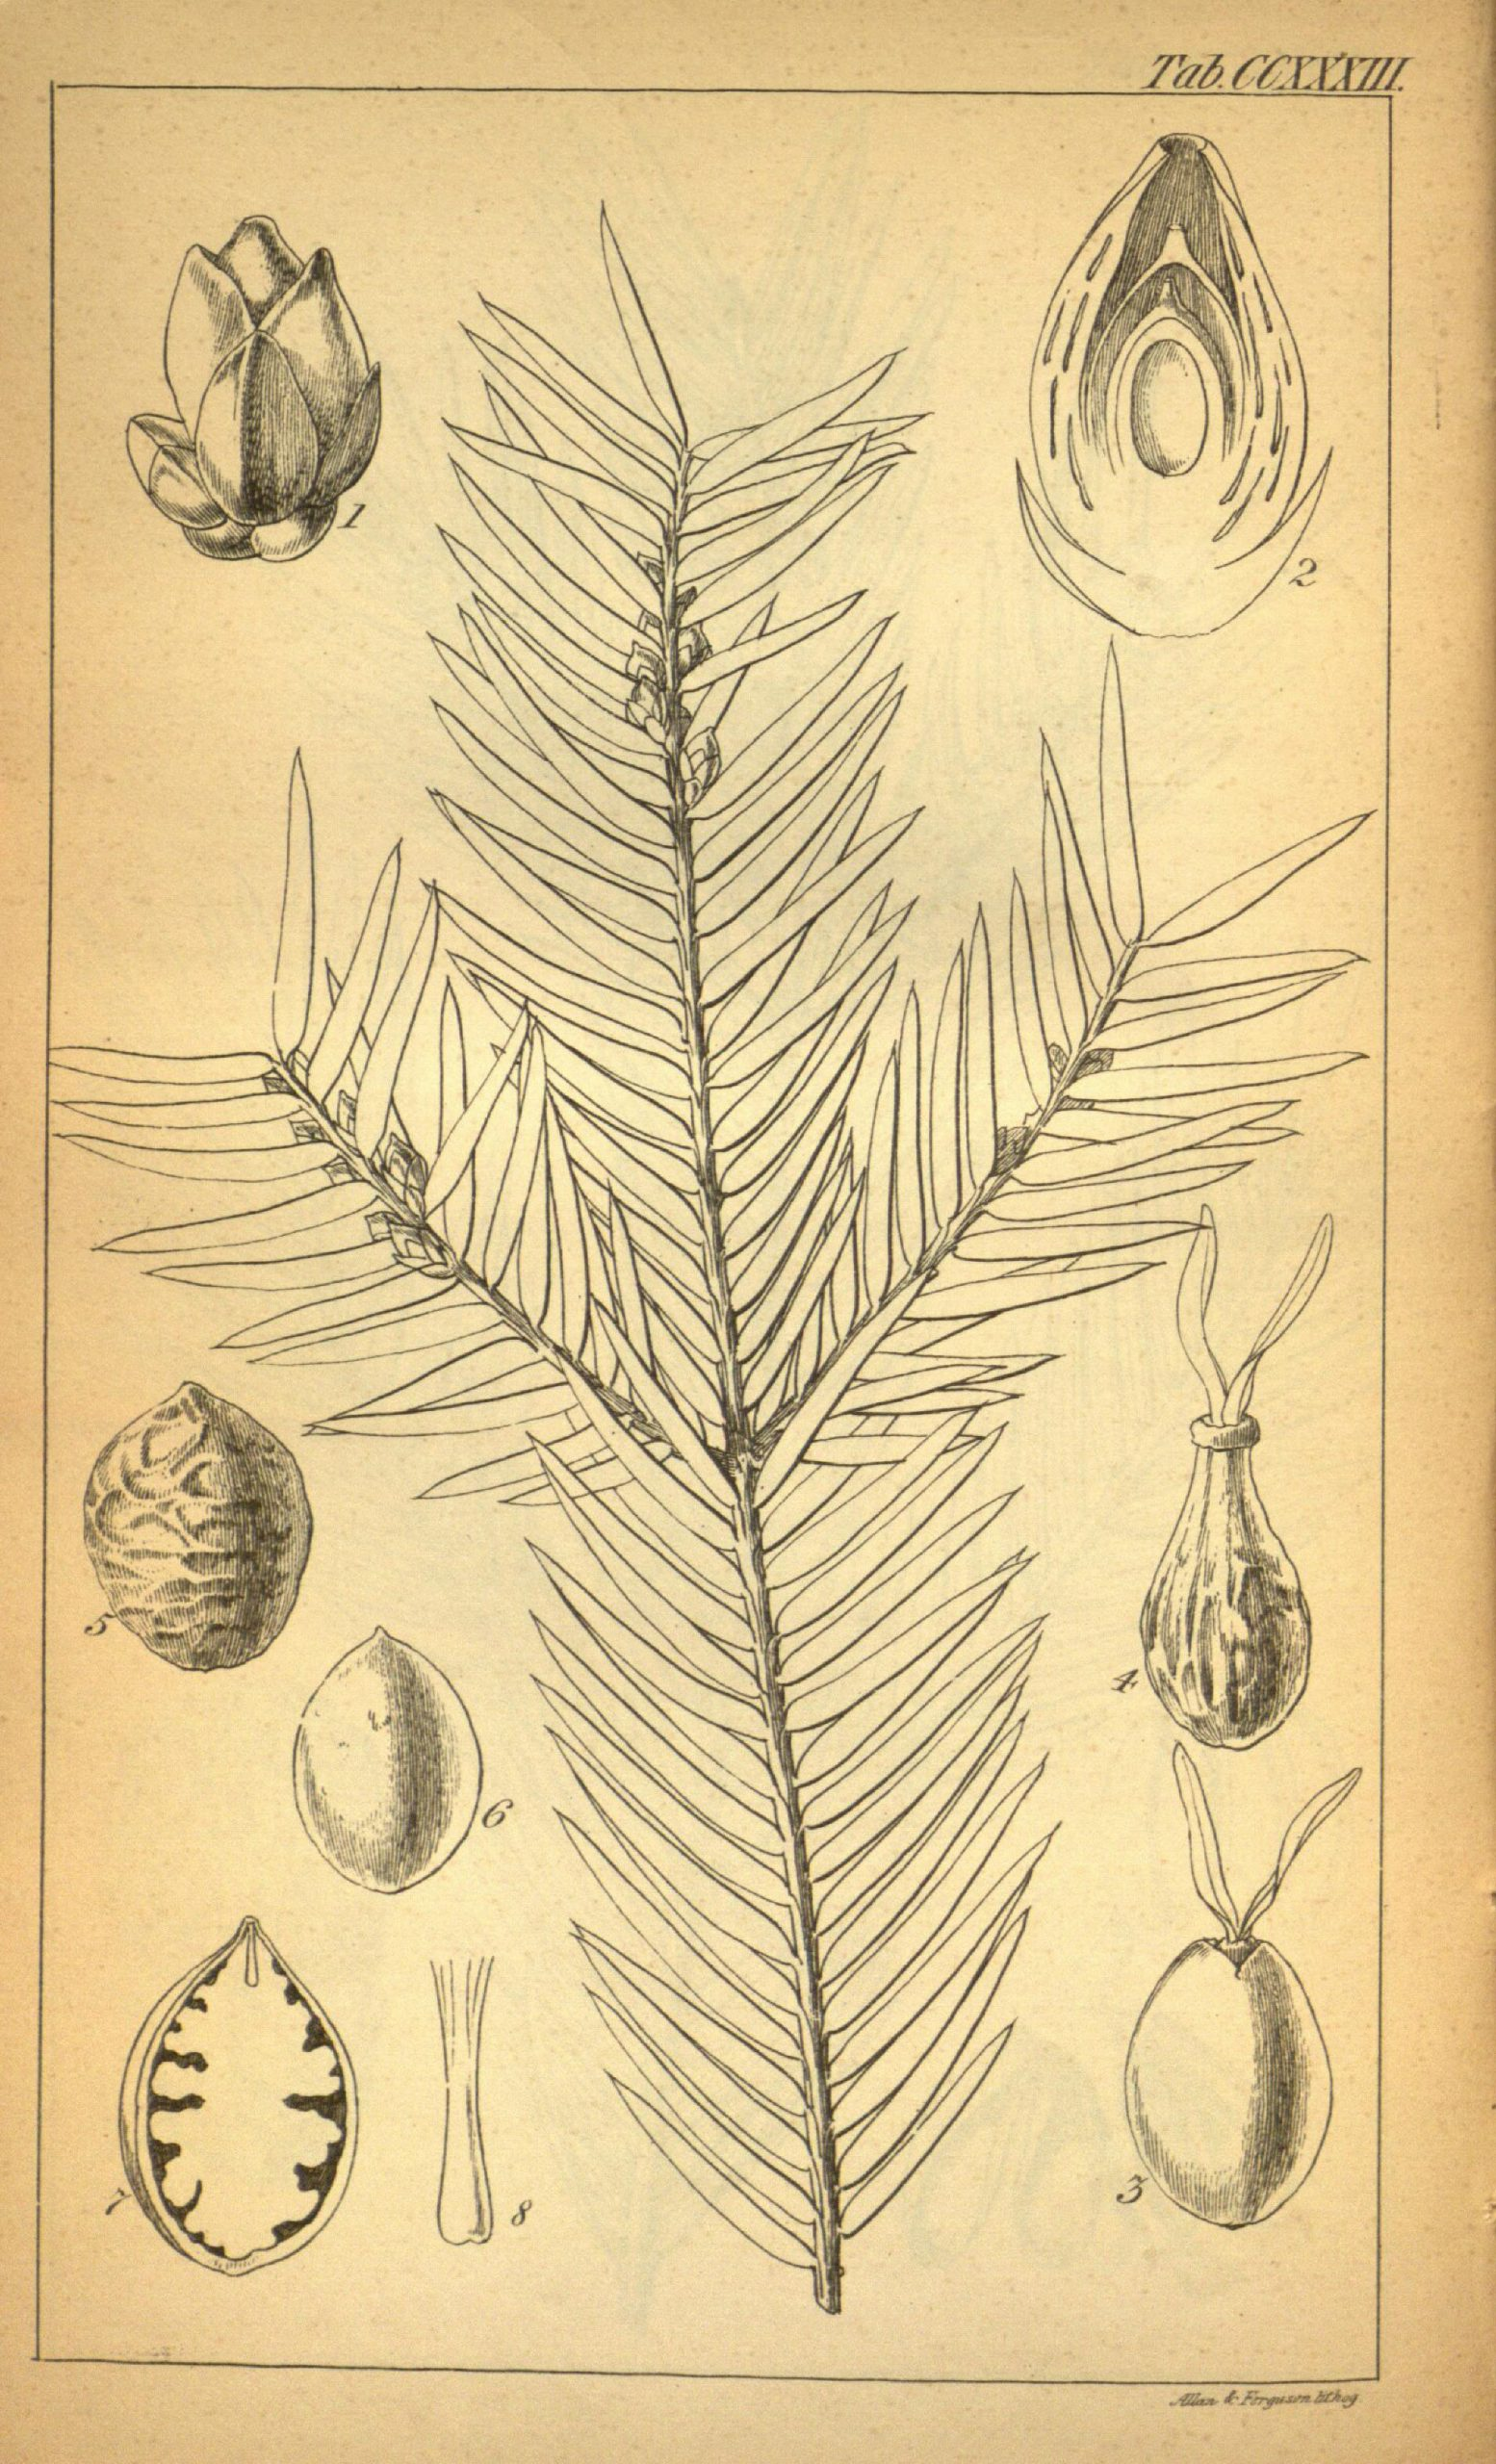 Black and white line drawing of a conifer tree branch with cones.